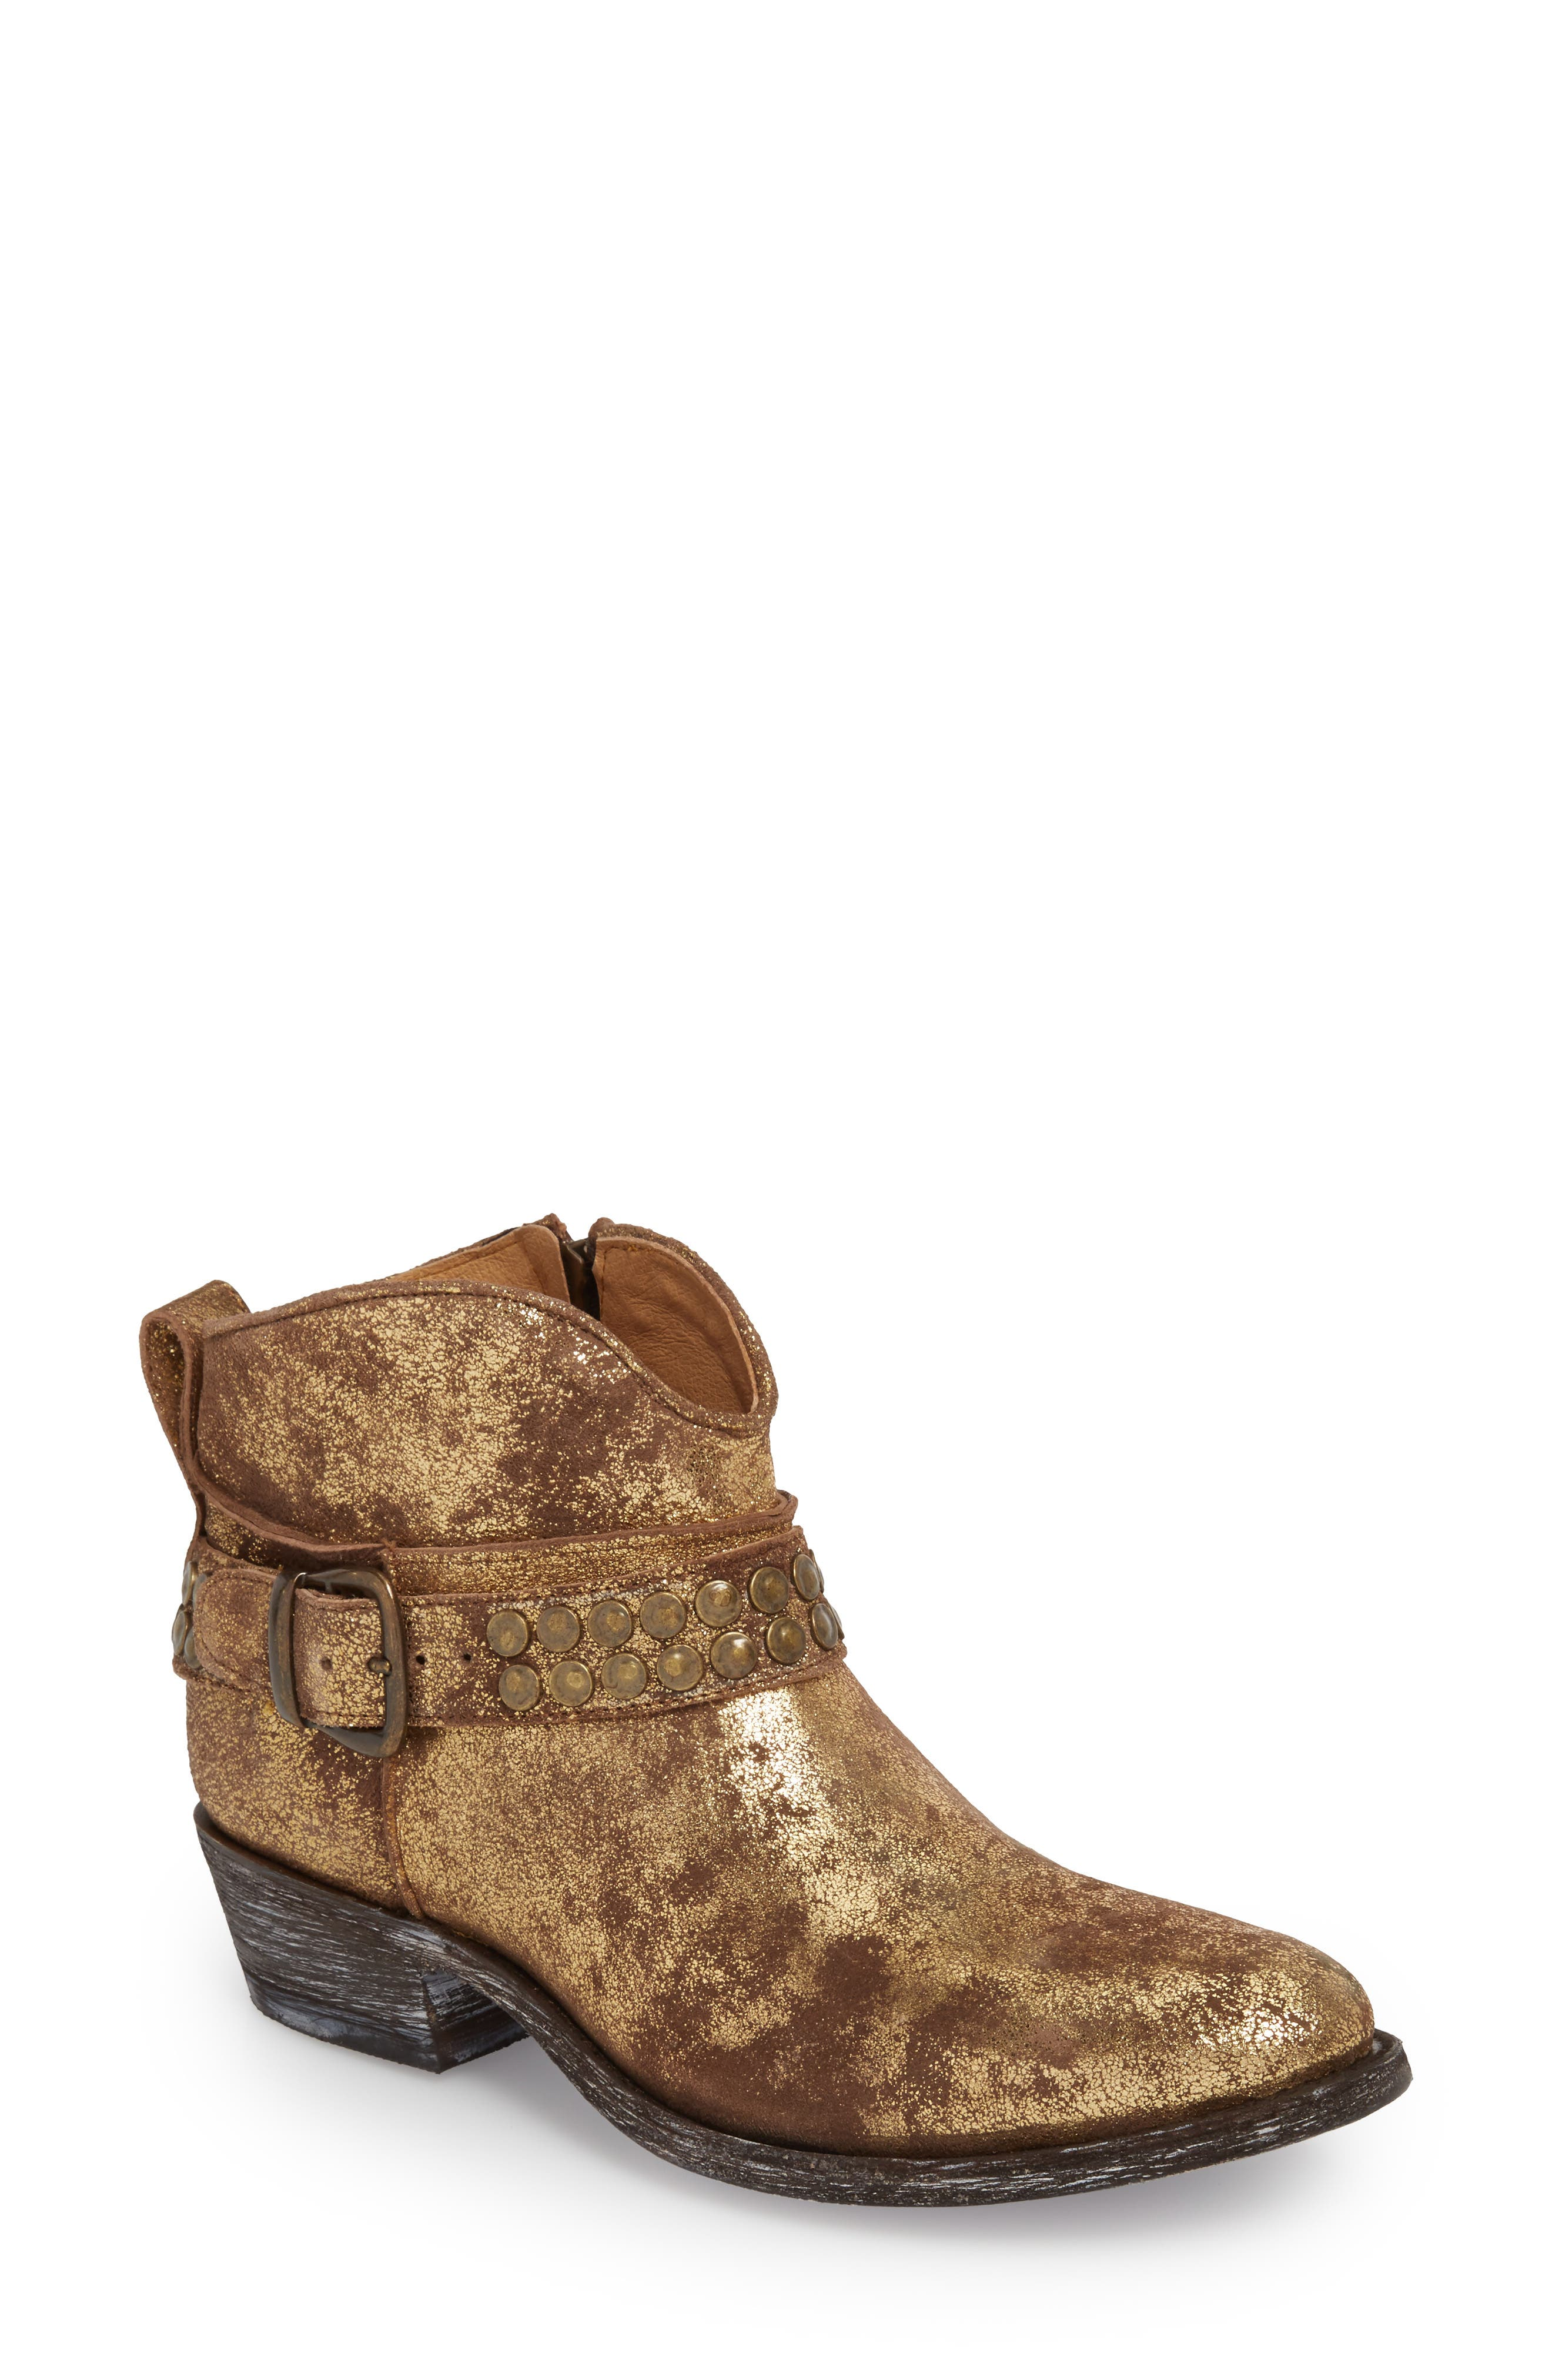 Serene Bootie,                             Main thumbnail 1, color,                             Gold Suede